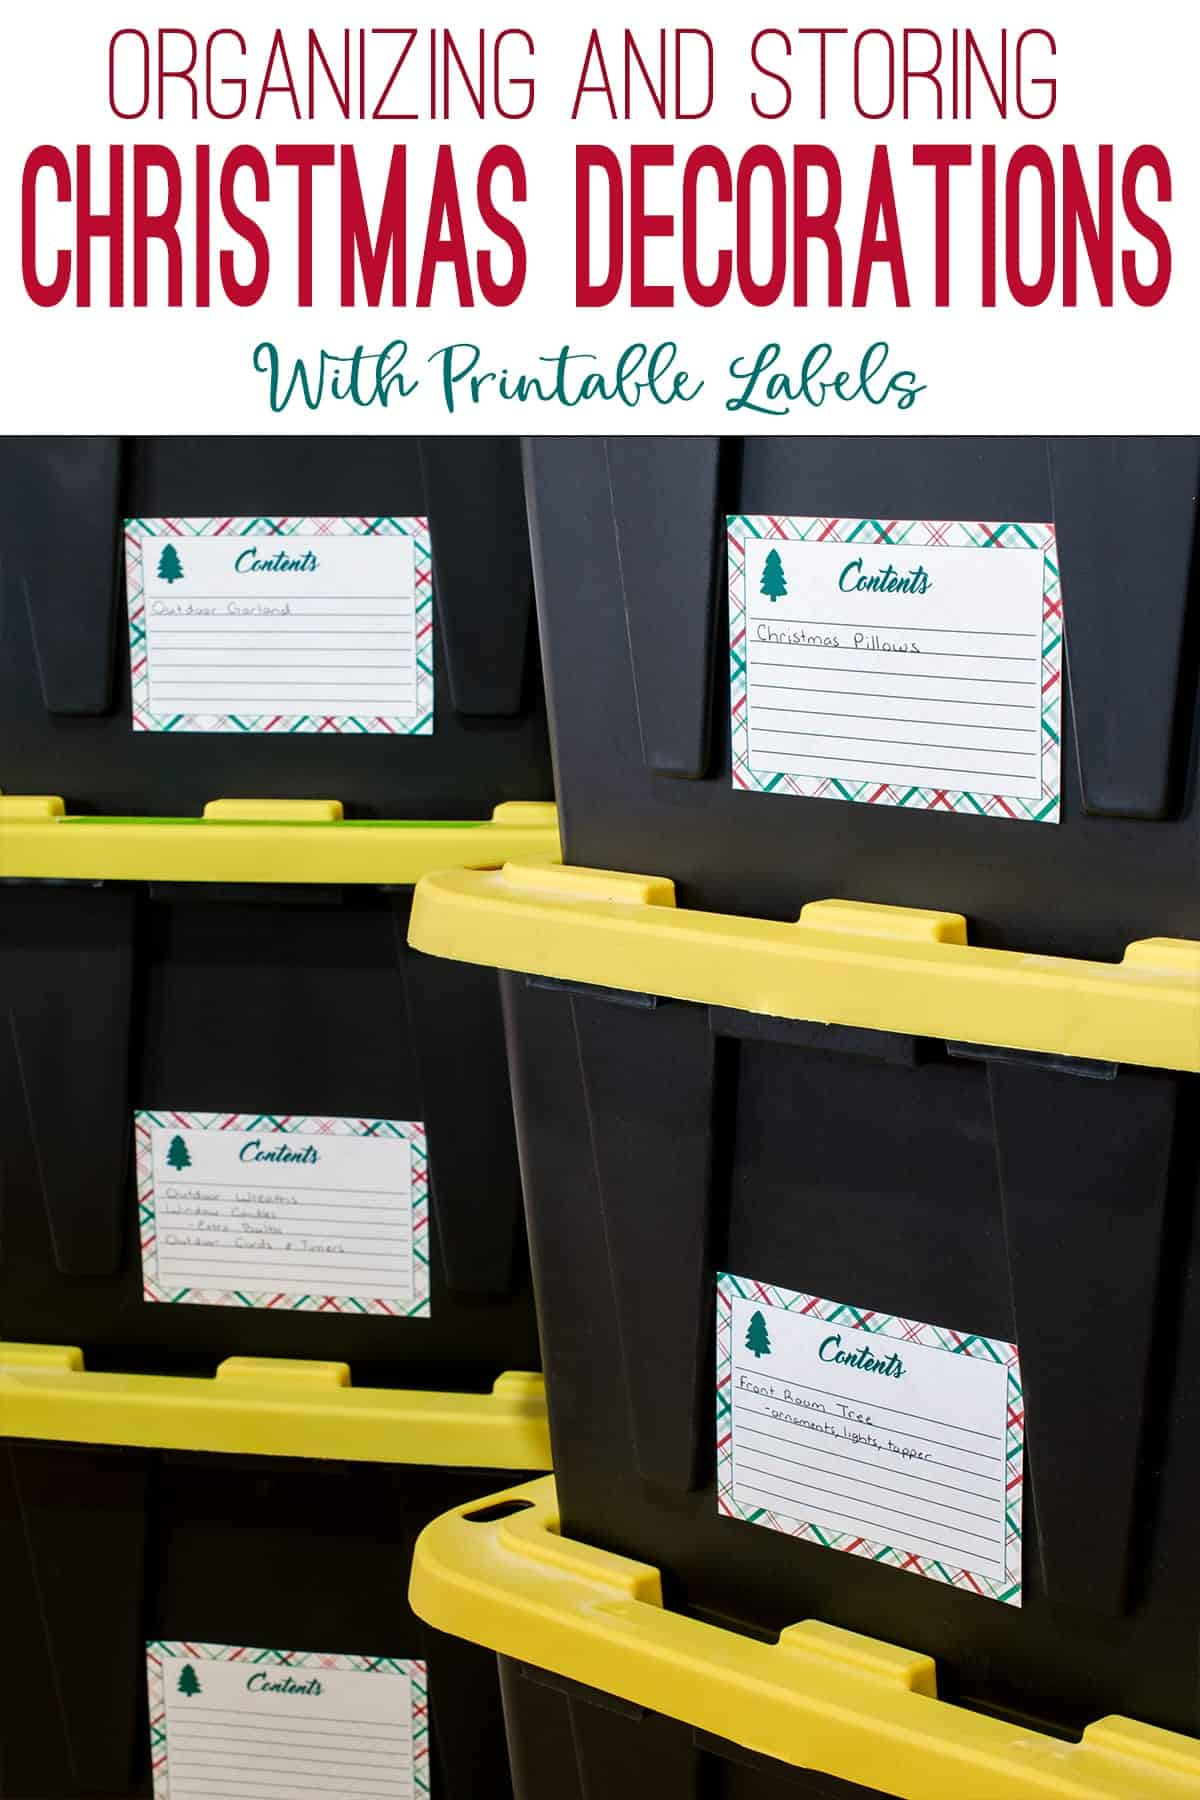 Christmas storage bins with printable content labels.